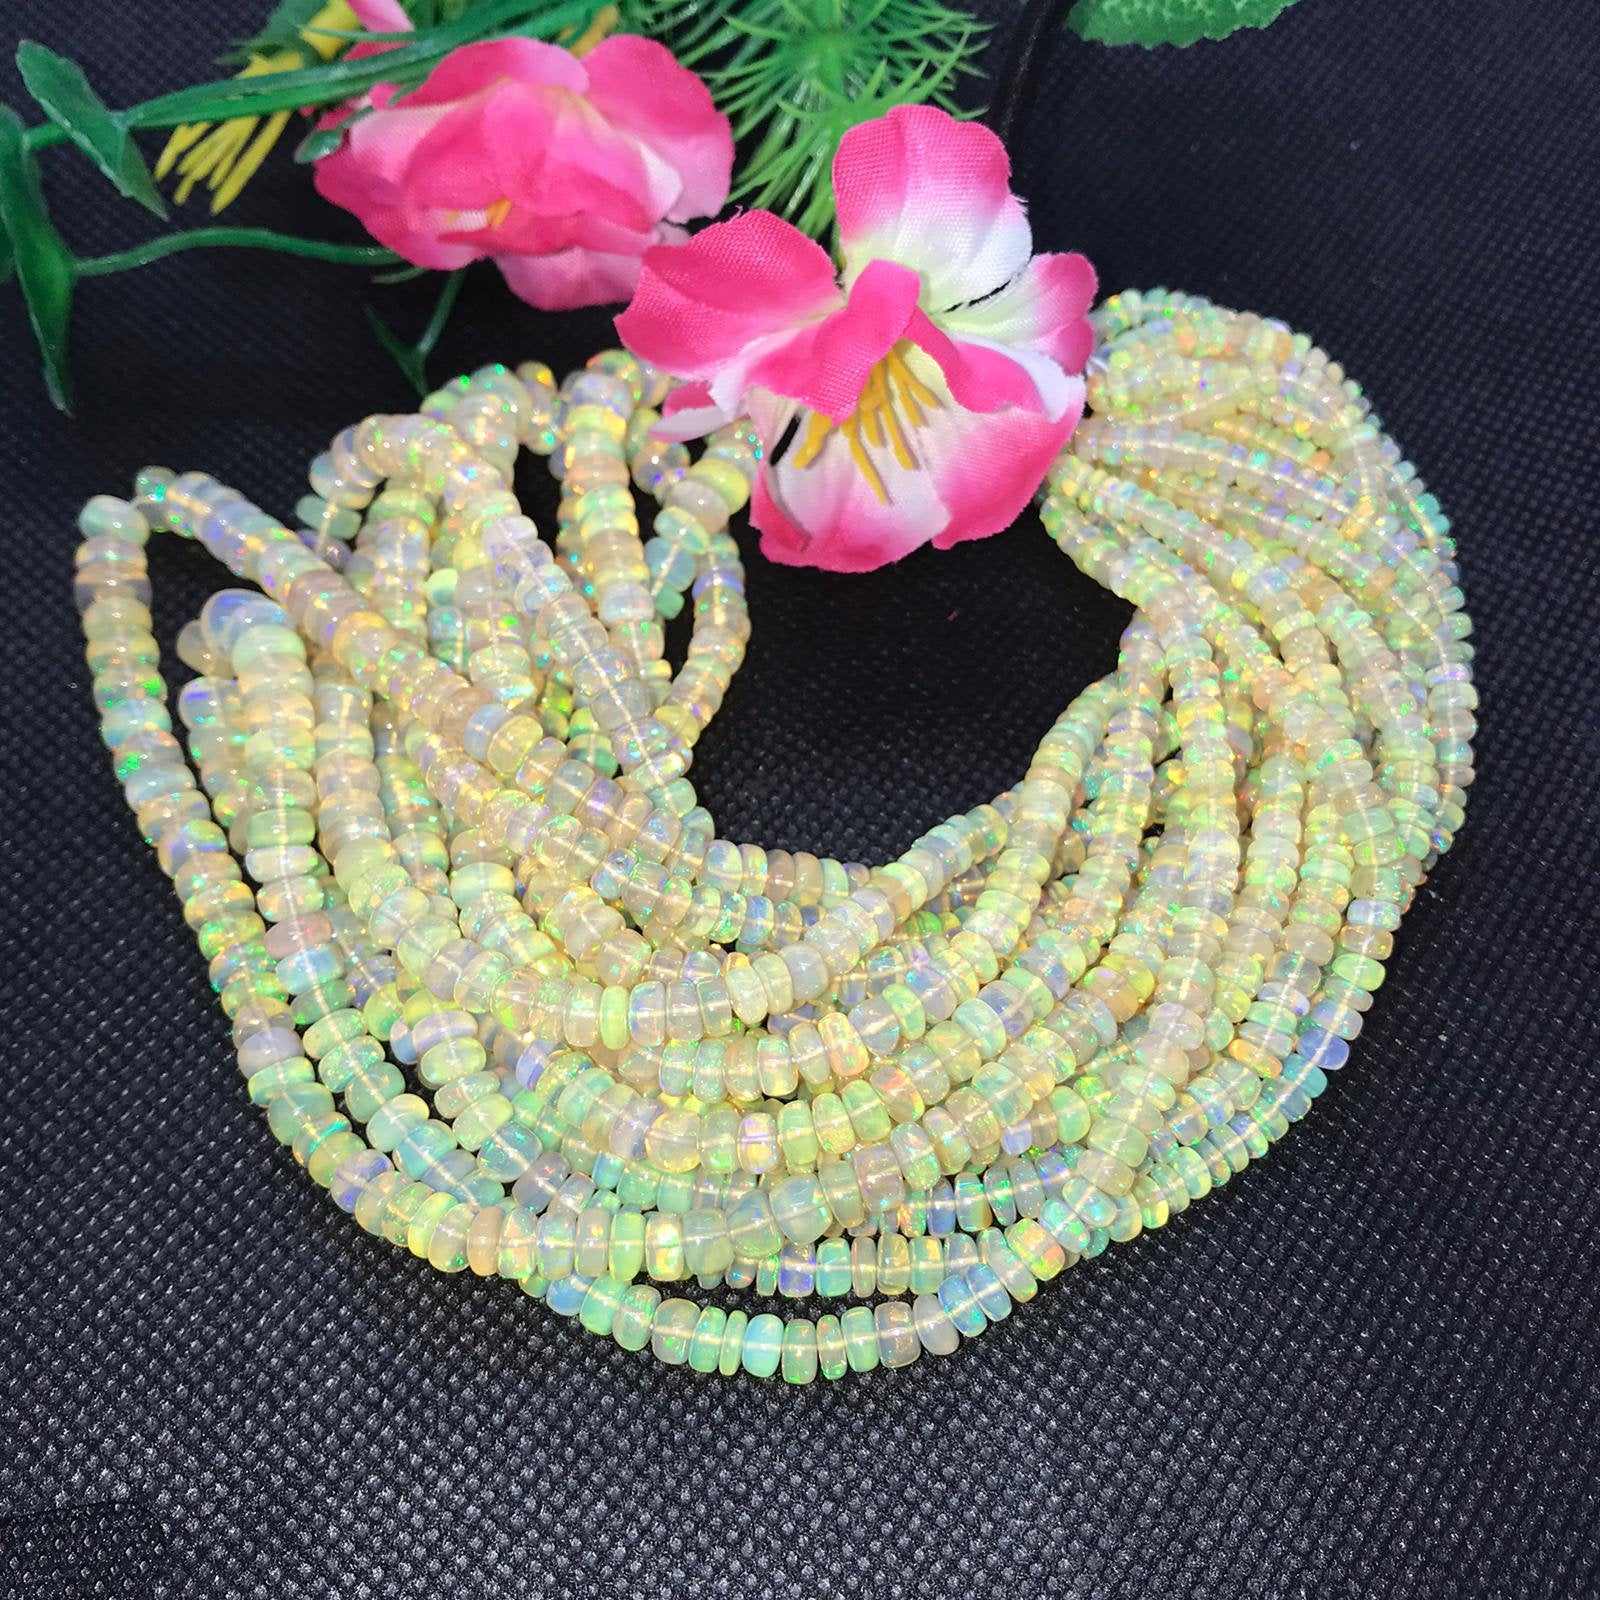 Quality Roundel Beads 16inch Long Strand Full Flashy Fire Necklace AX3 Amazing Quality Natural Ethiopian Opal Beads 3MM To 4MM Size AAA+